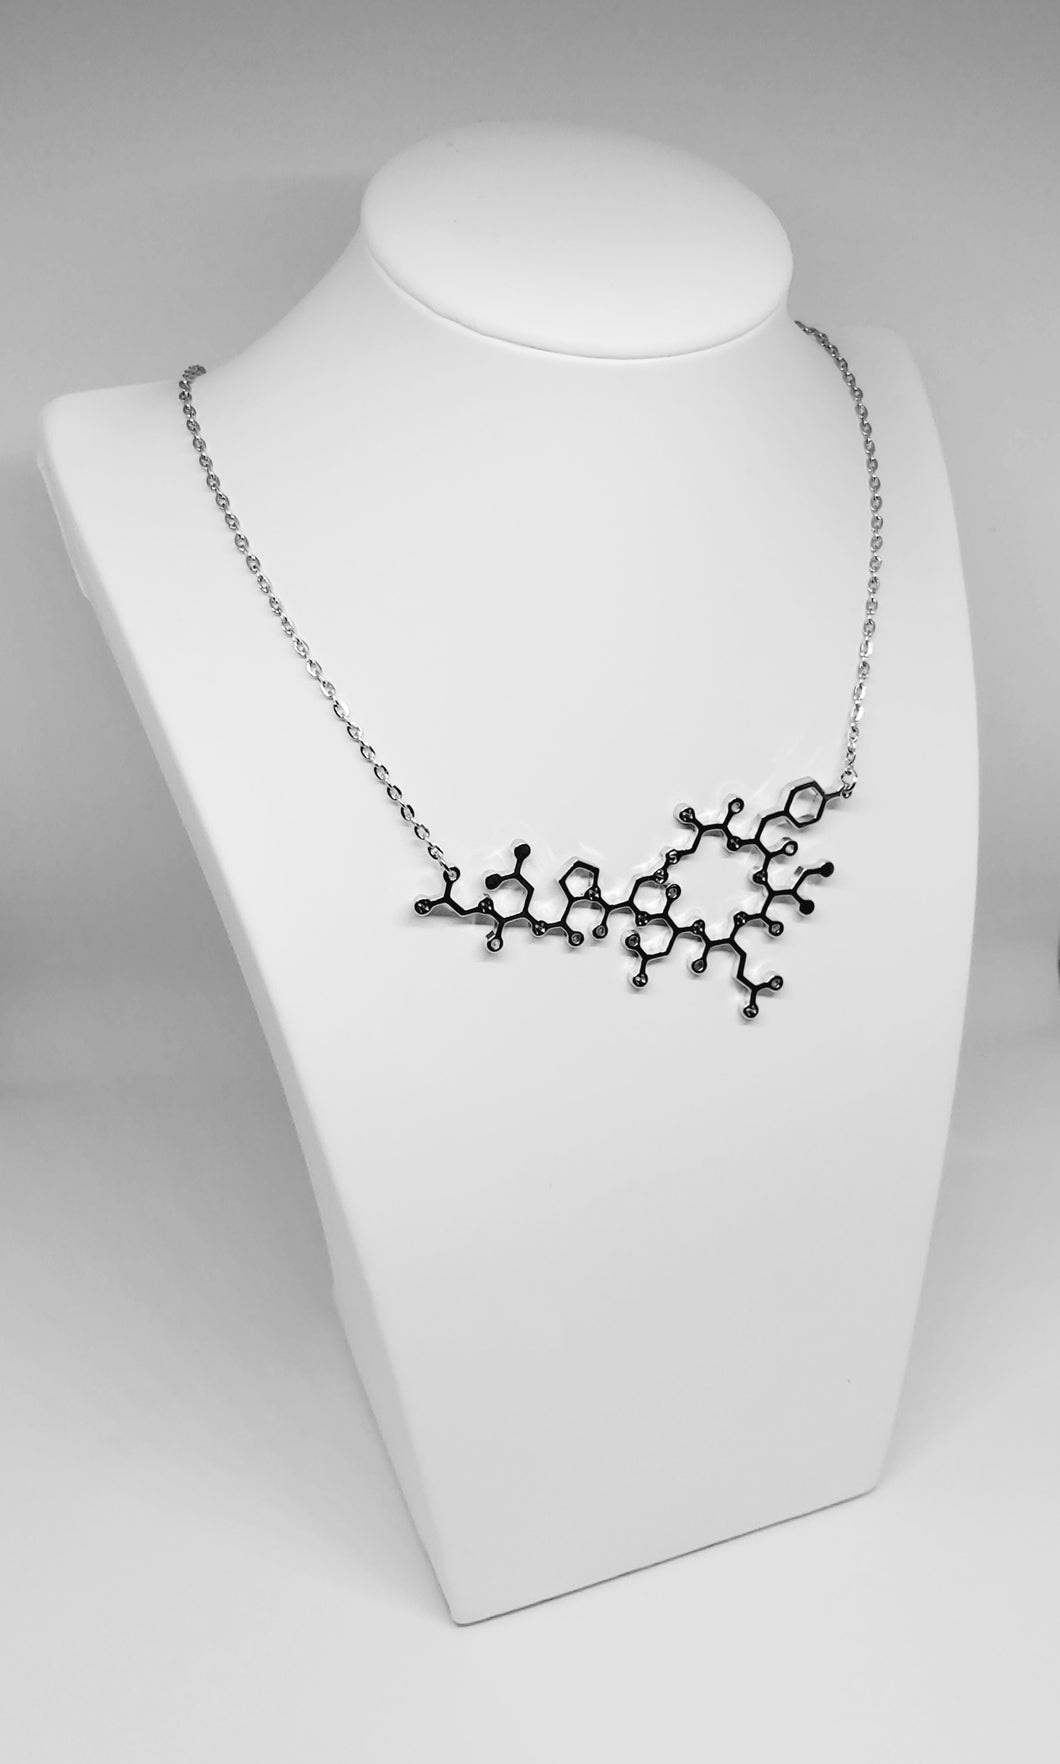 Oxytocin Necklace